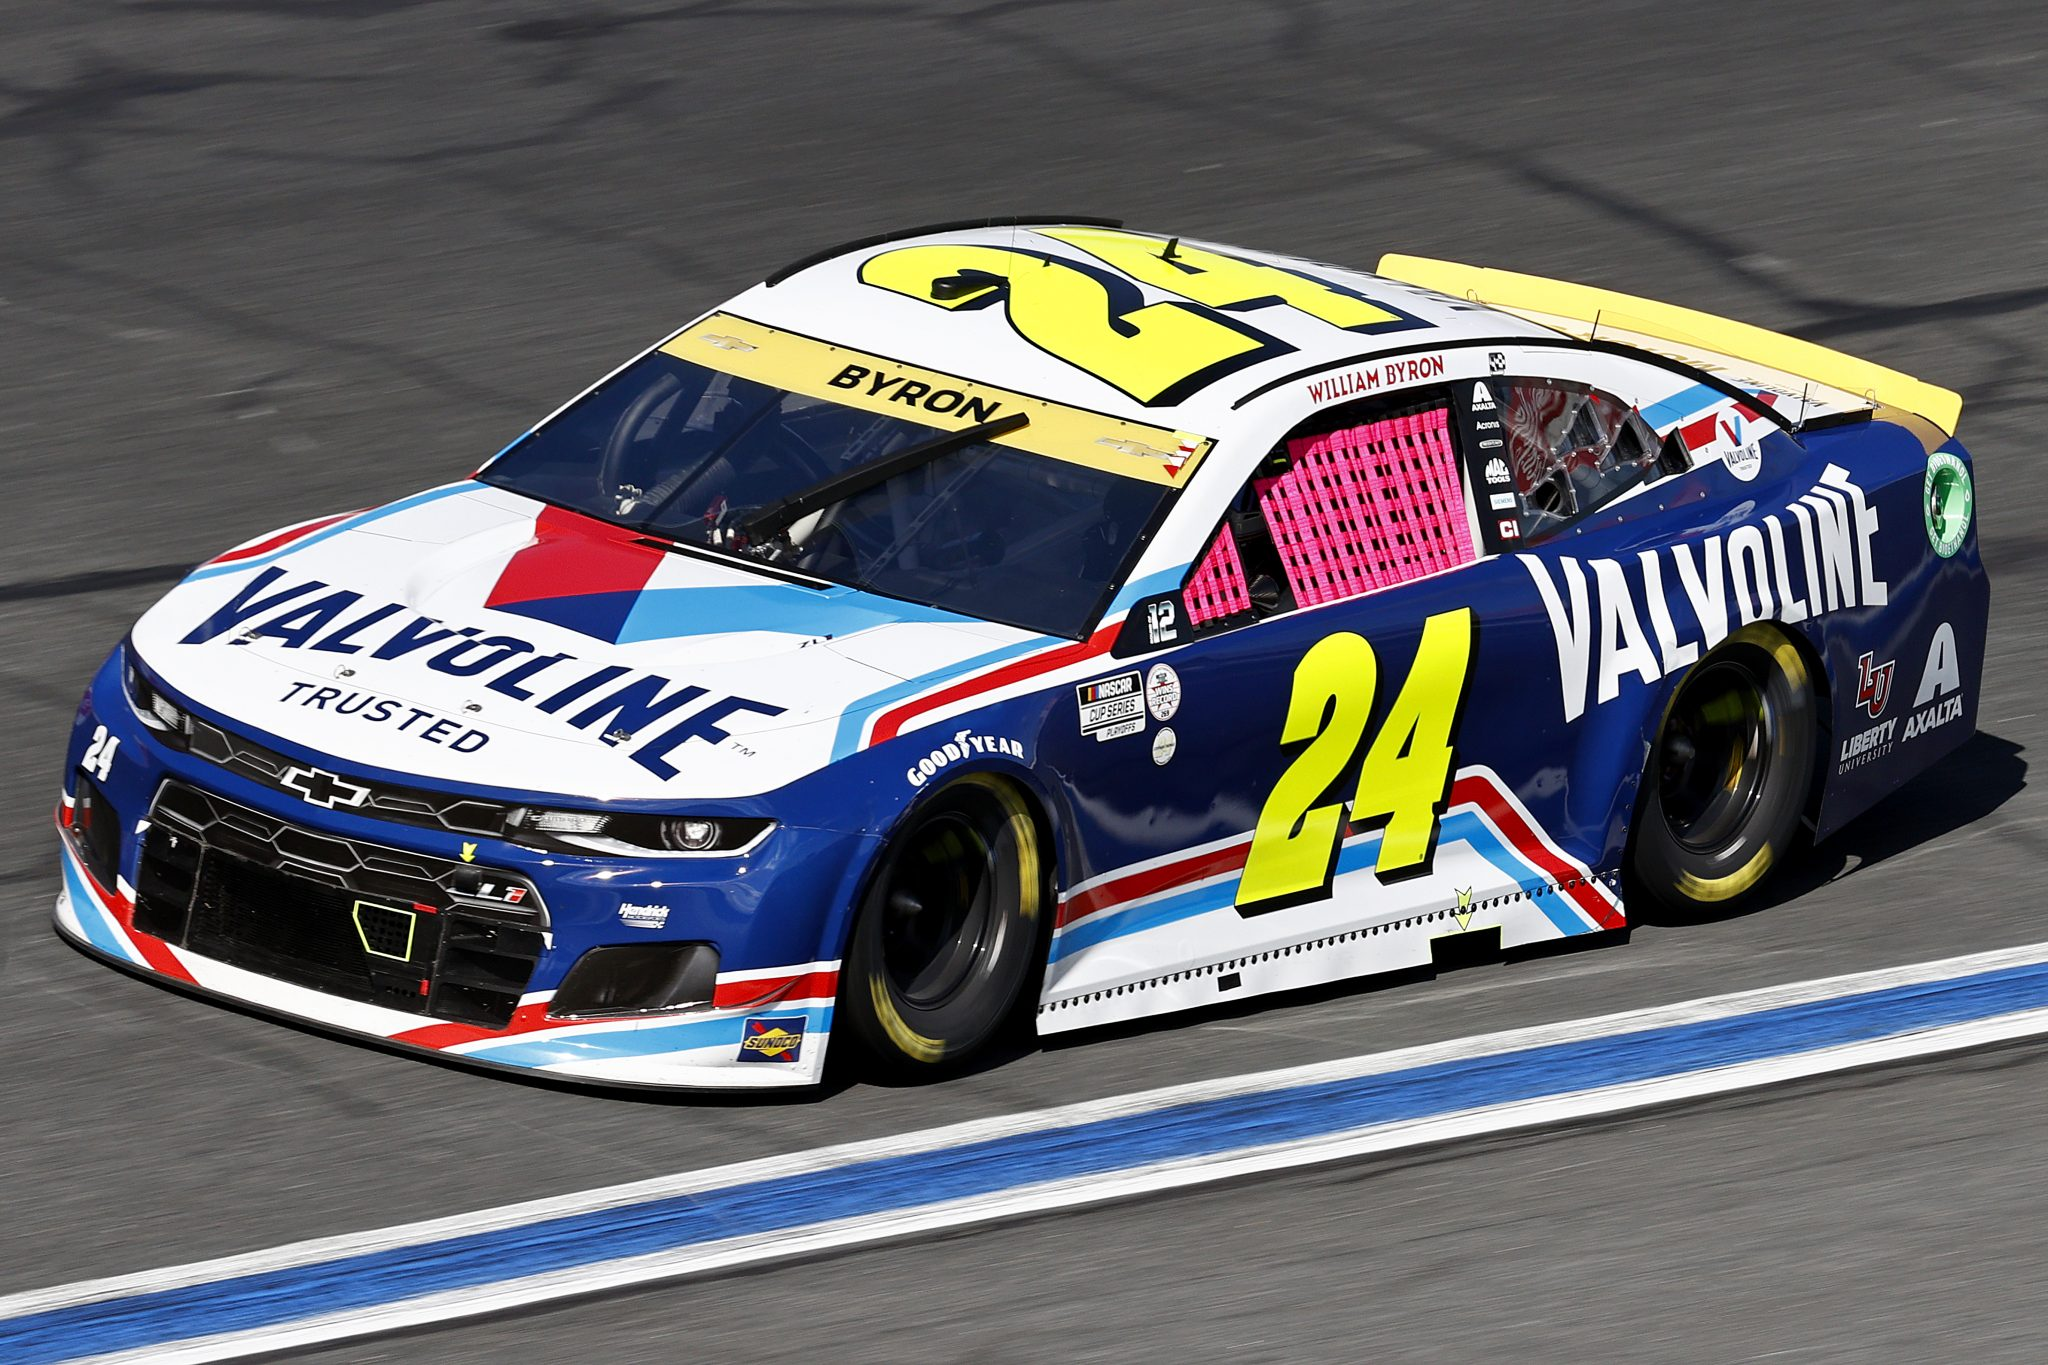 CONCORD, NORTH CAROLINA - OCTOBER 10: William Byron, driver of the #24 Valvoline Chevrolet, drives during the NASCAR Cup Series Bank of America ROVAL 400 at Charlotte Motor Speedway on October 10, 2021 in Concord, North Carolina. (Photo by Jared C. Tilton/Getty Images) | Getty Images